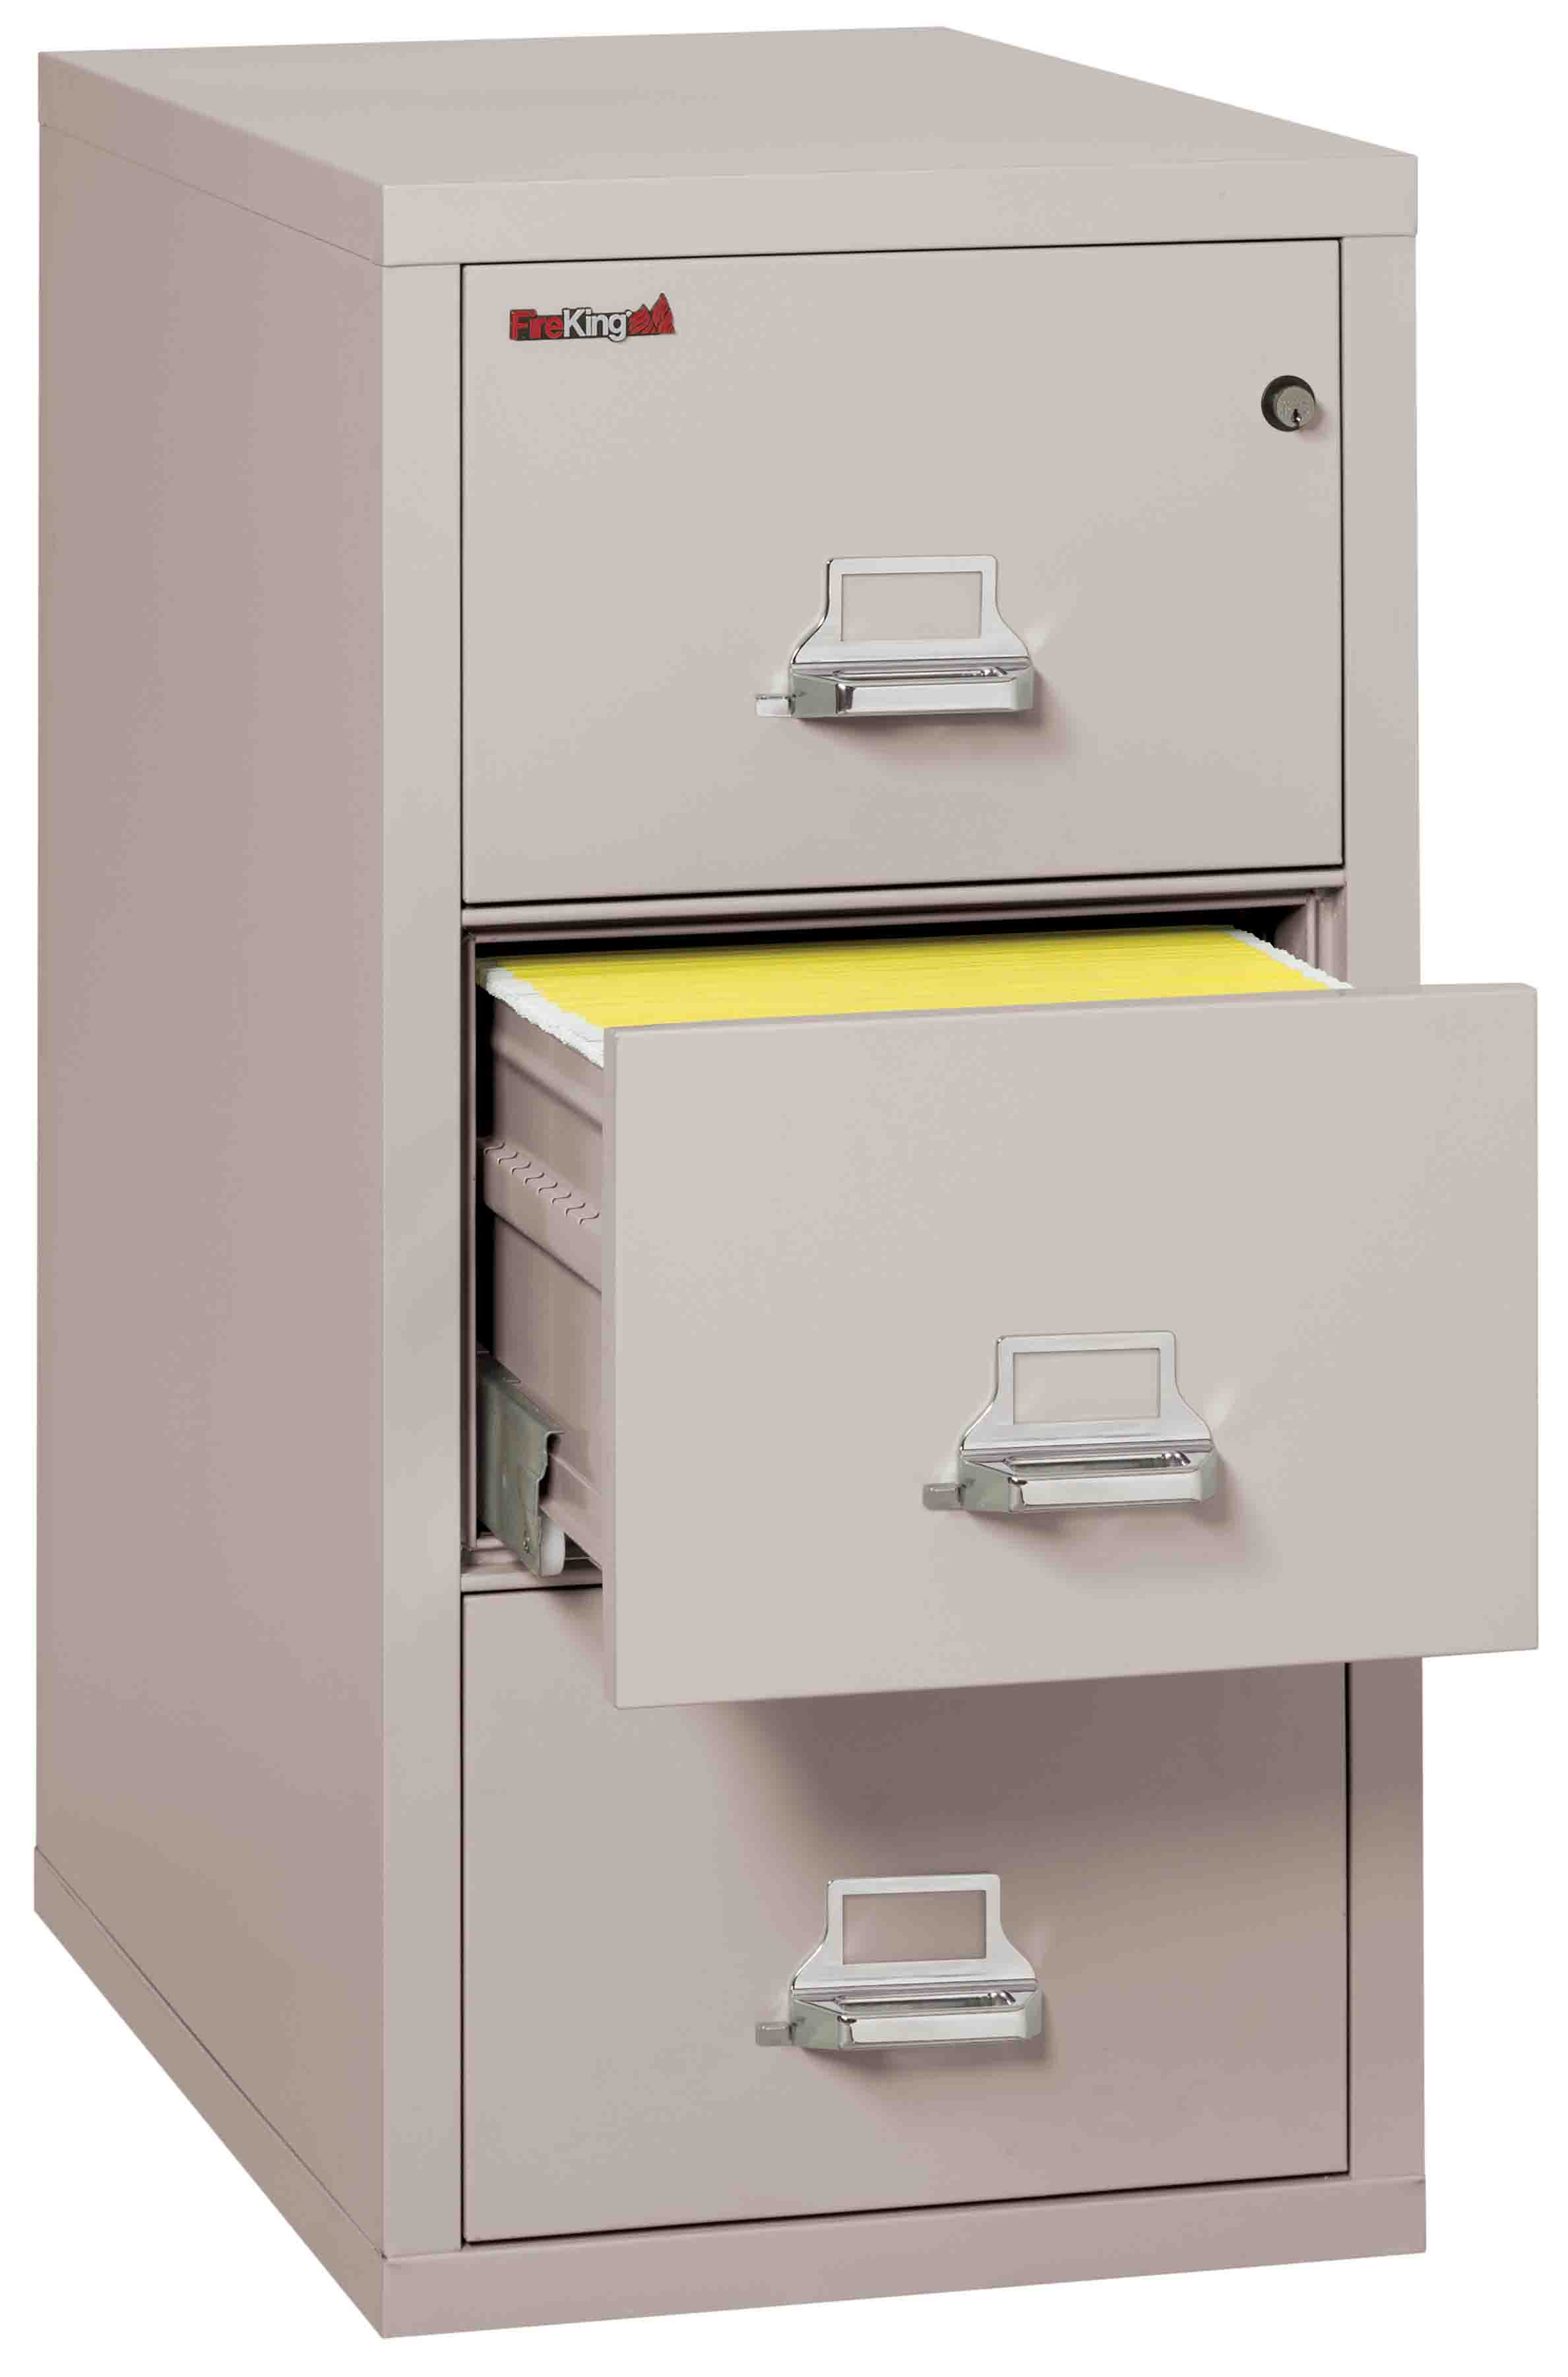 Fire King 3 1831 C Vertical Fireproof File Cabinets Drawer 1 Hour Rating